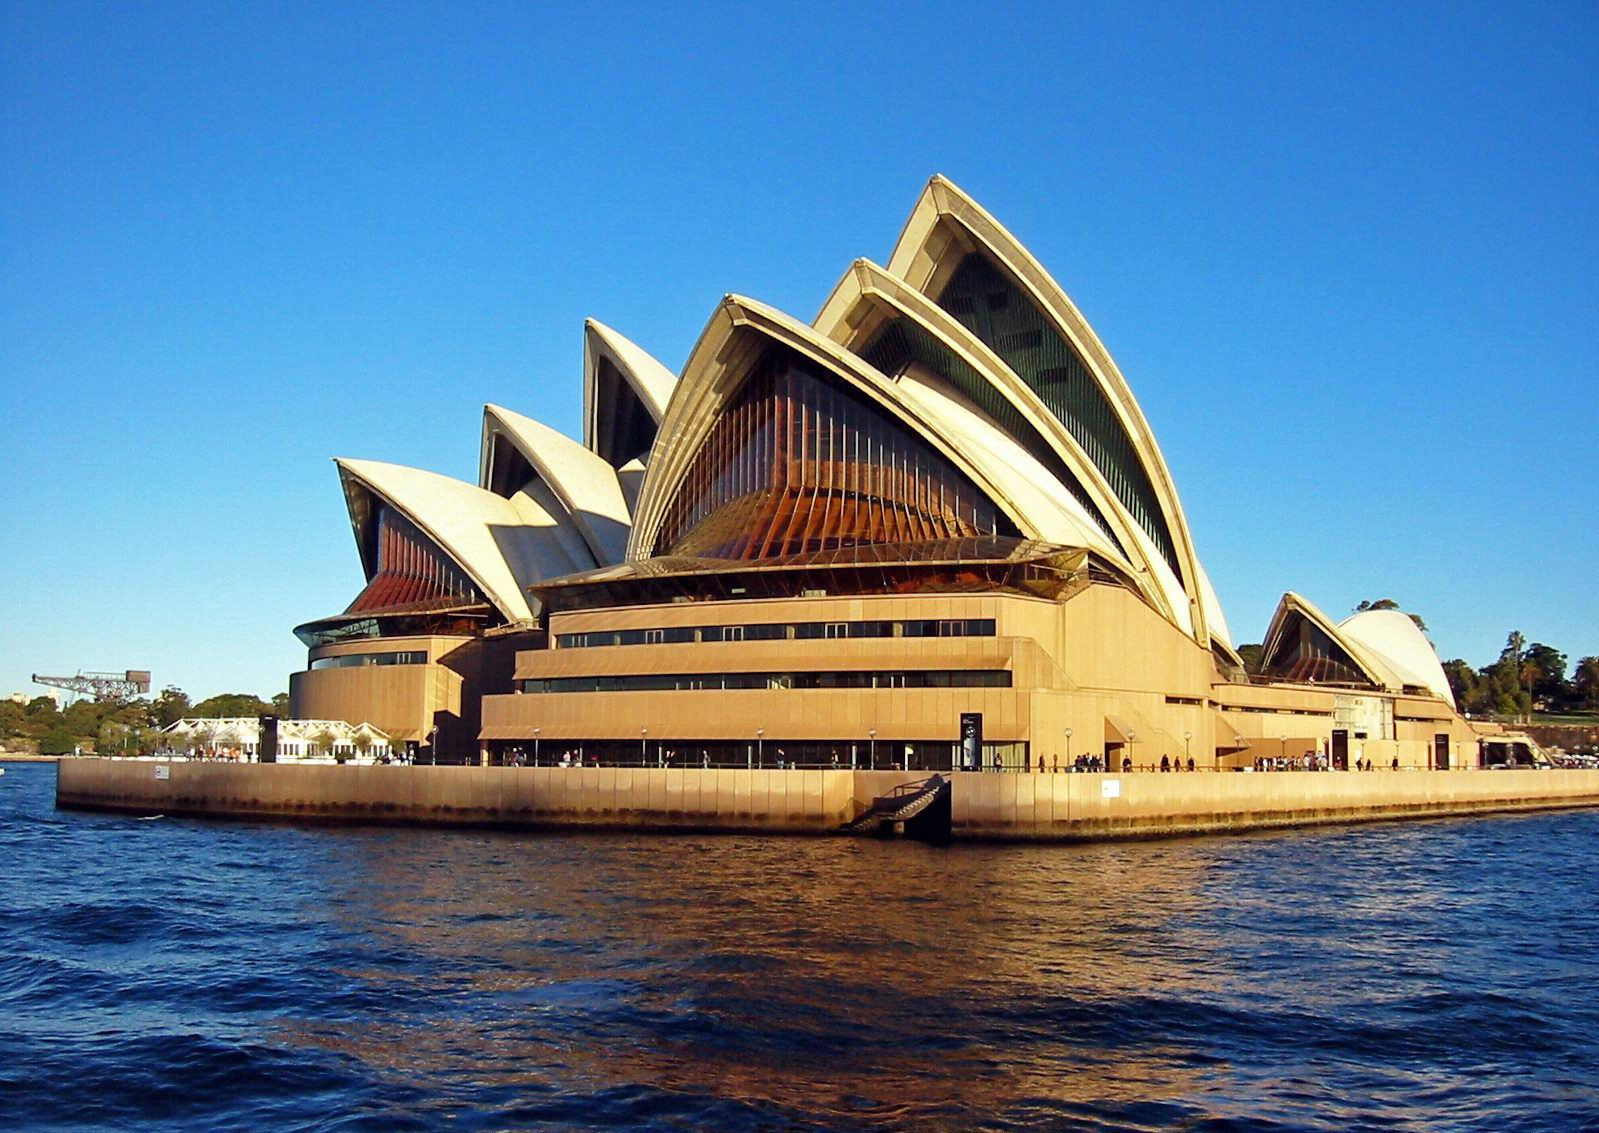 http://upload.wikimedia.org/wikipedia/commons/6/67/Sydney_Opera_House_Australia.jpg